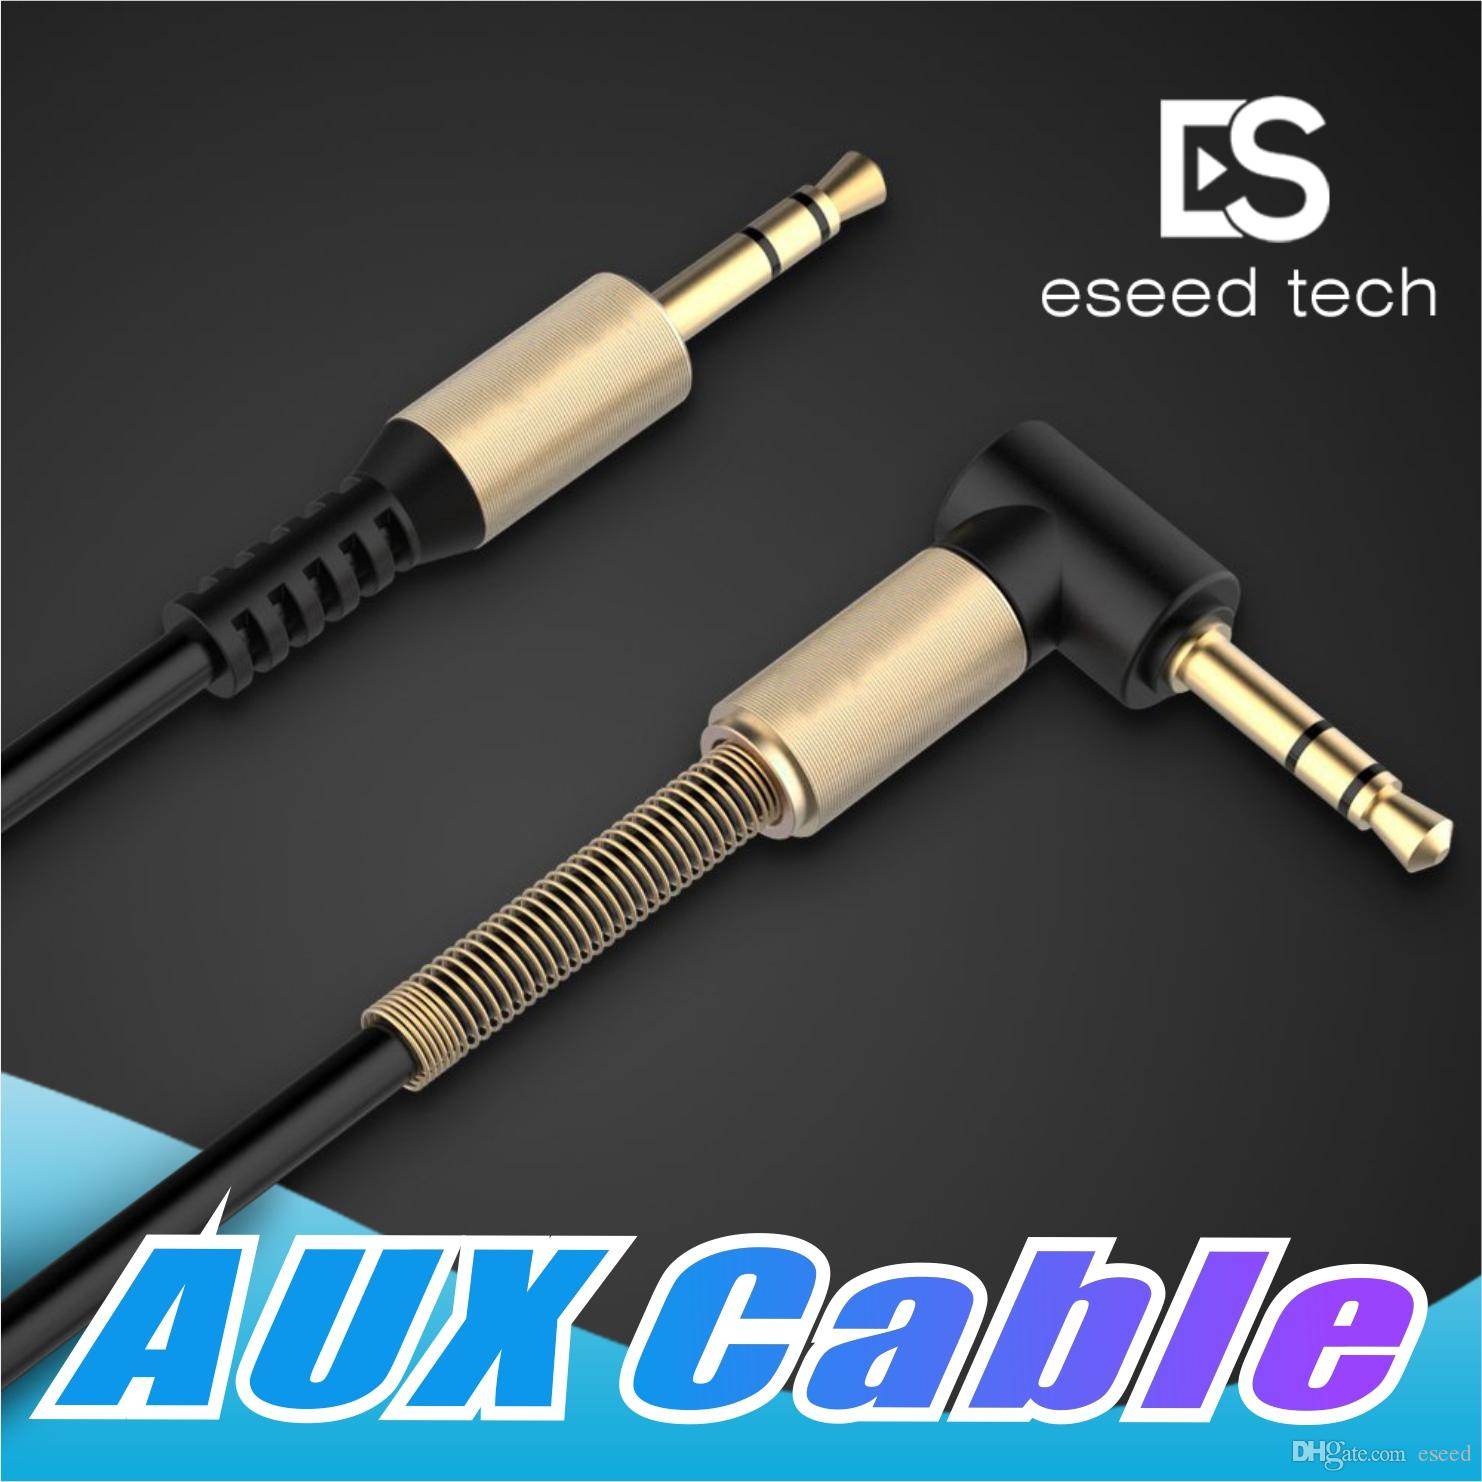 Buy 3 5mm Auxiliary Audio Cable Cord Flat 90 Degree Right Aux Cable With Steel Spring Relief For Headphones Ipods Iphones Home Car Stereos In Bulk From